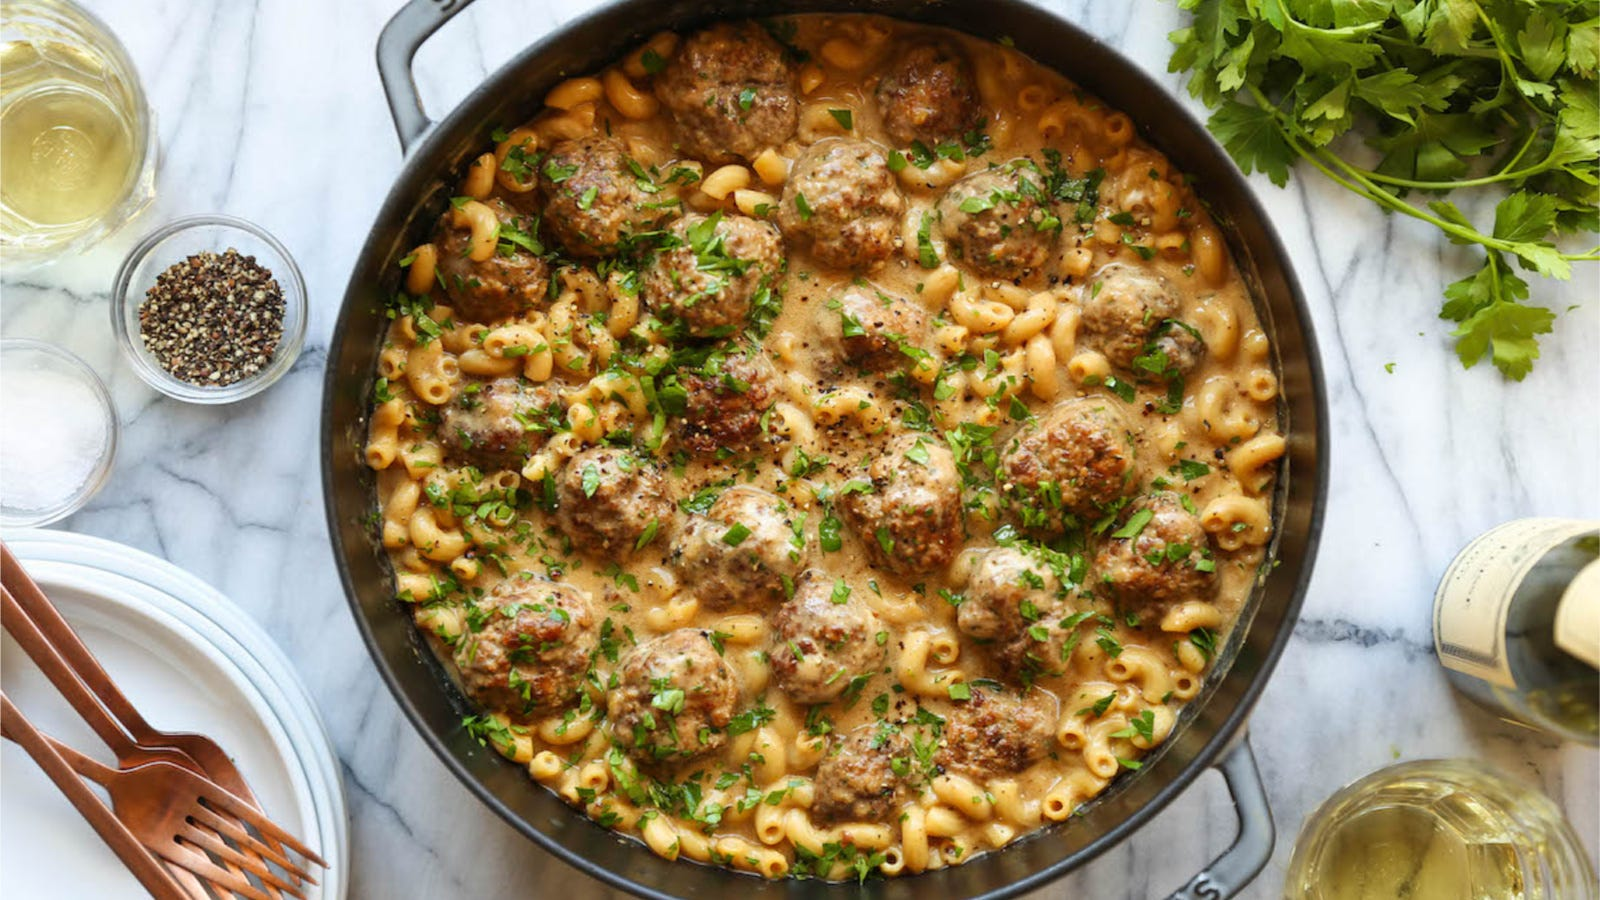 A large Staub Dutch oven filled with Swedish meatballs and macaroni elbows swimming in a beef gravy, topped with fresh parsley. Surrounding the Dutch oven are various ingredients and a few forks.